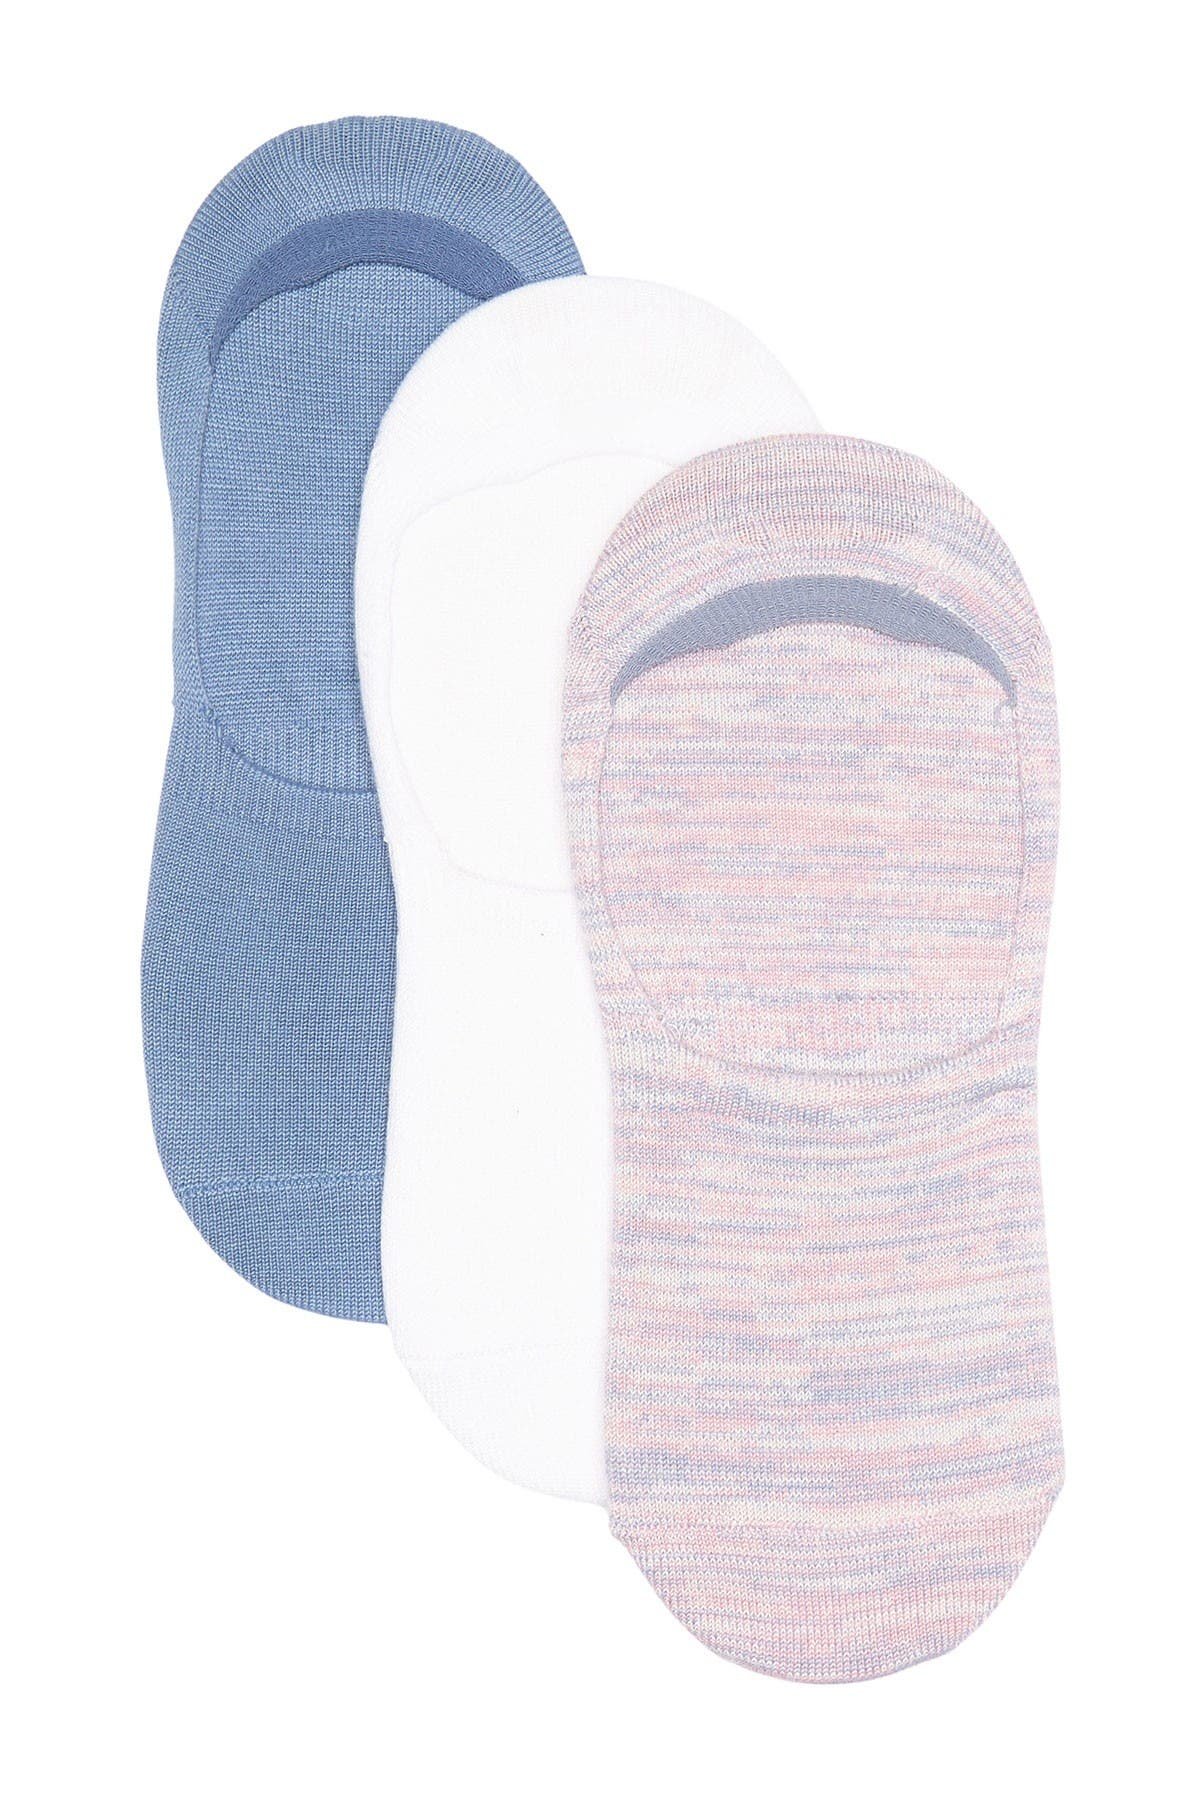 Image of Keds Liner Socks - Pack of 3